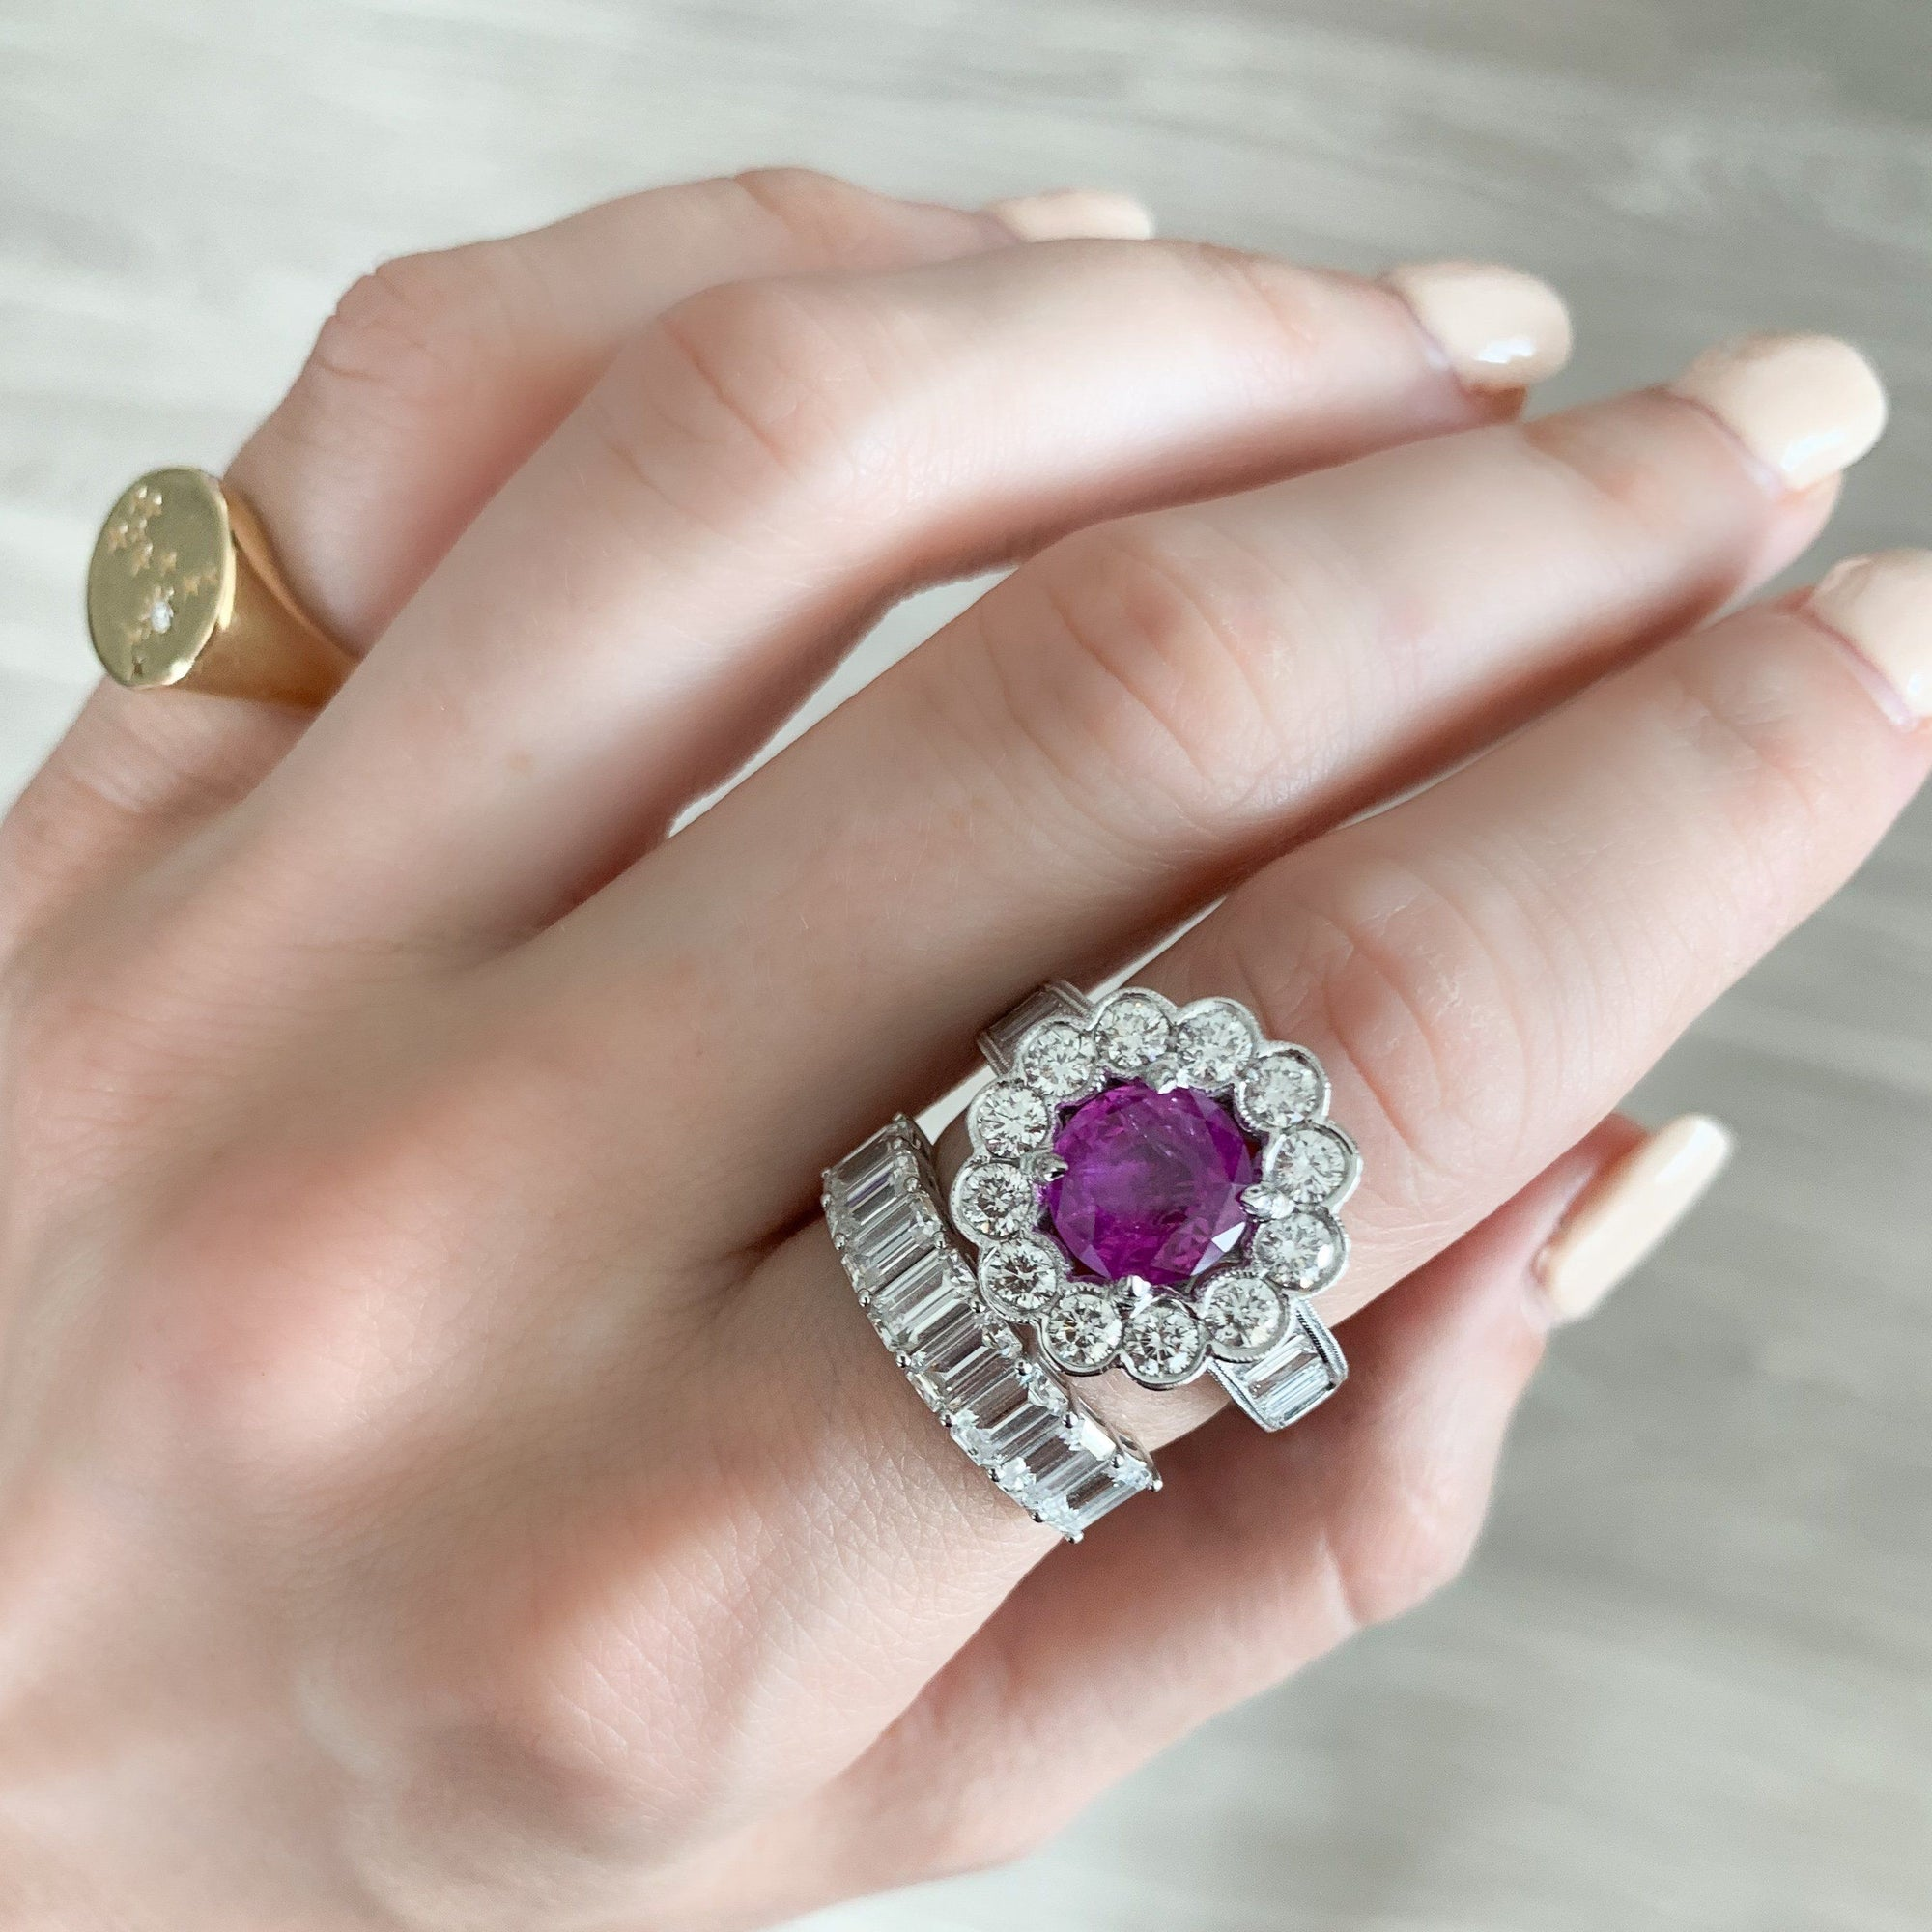 Antique Floral Halo with a 2.68ct Pink Sapphire and Art Deco Style Baguette diamonds Rings Good Stone Inc